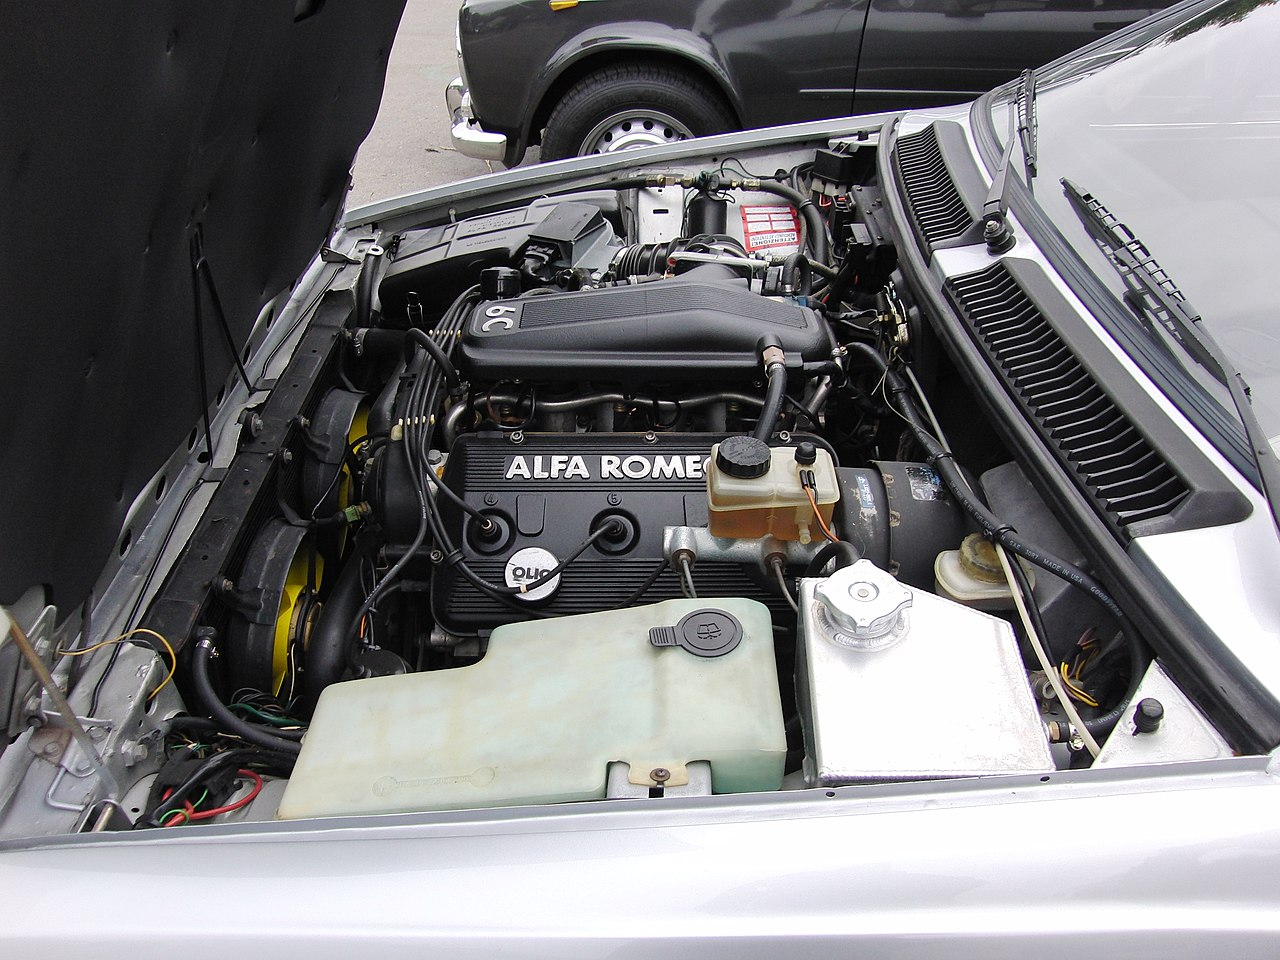 File:Alfa Romeo GTV6 engine bay.jpg